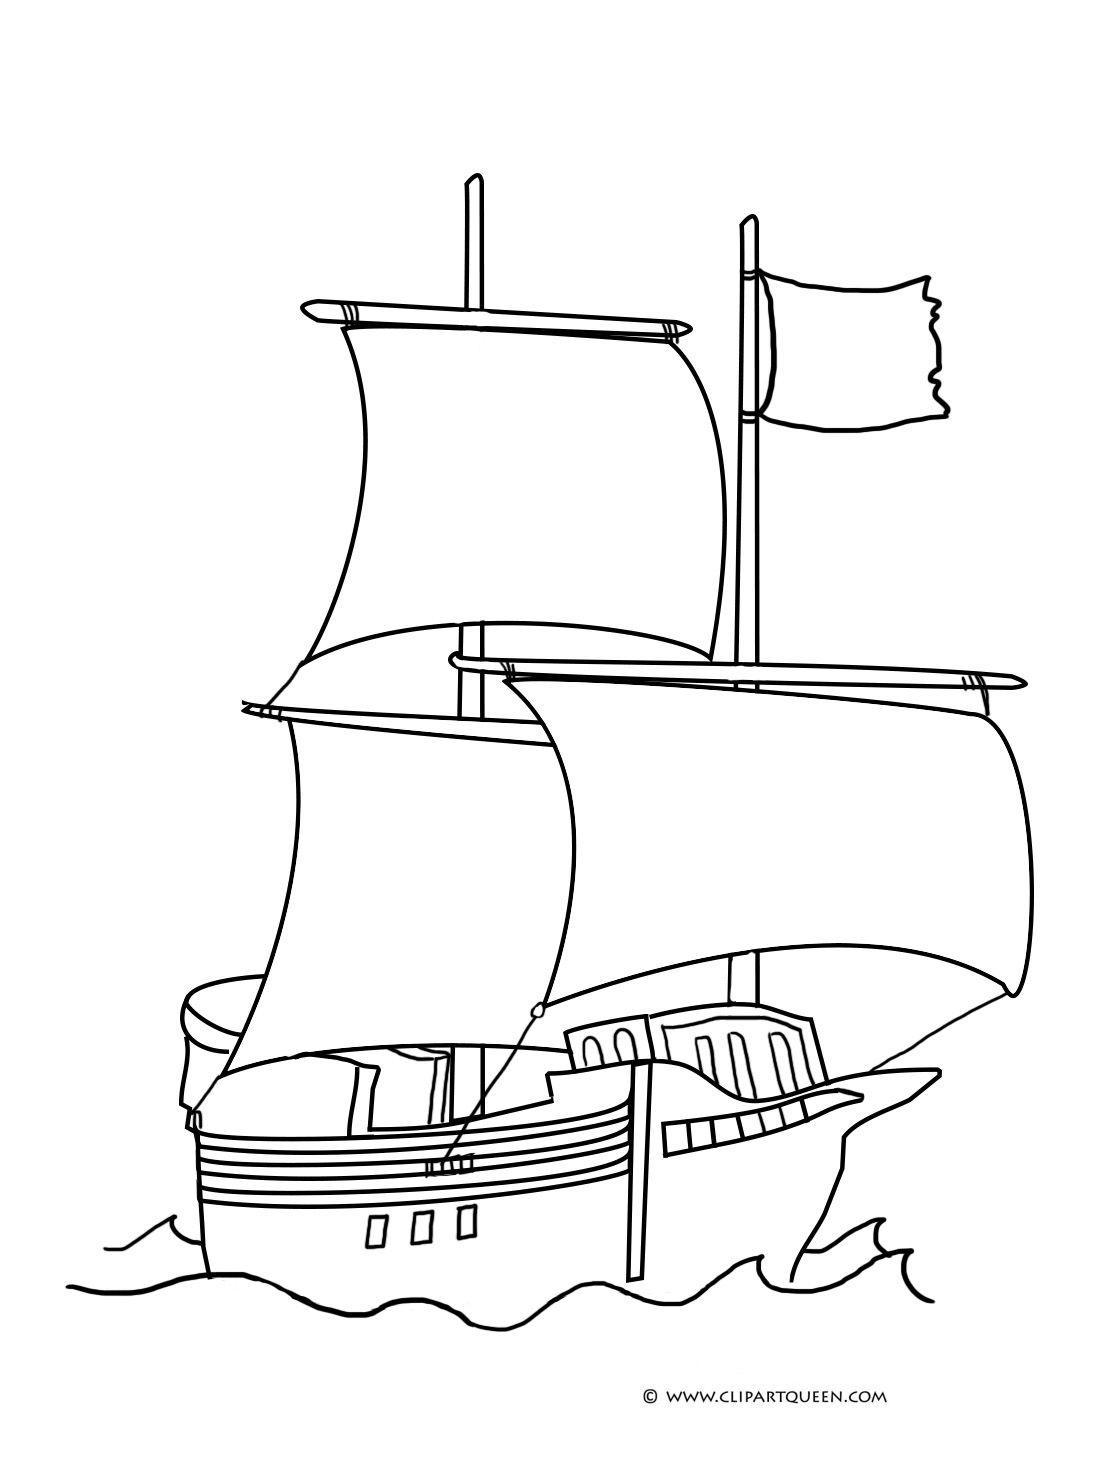 pirate ship coloring sheet